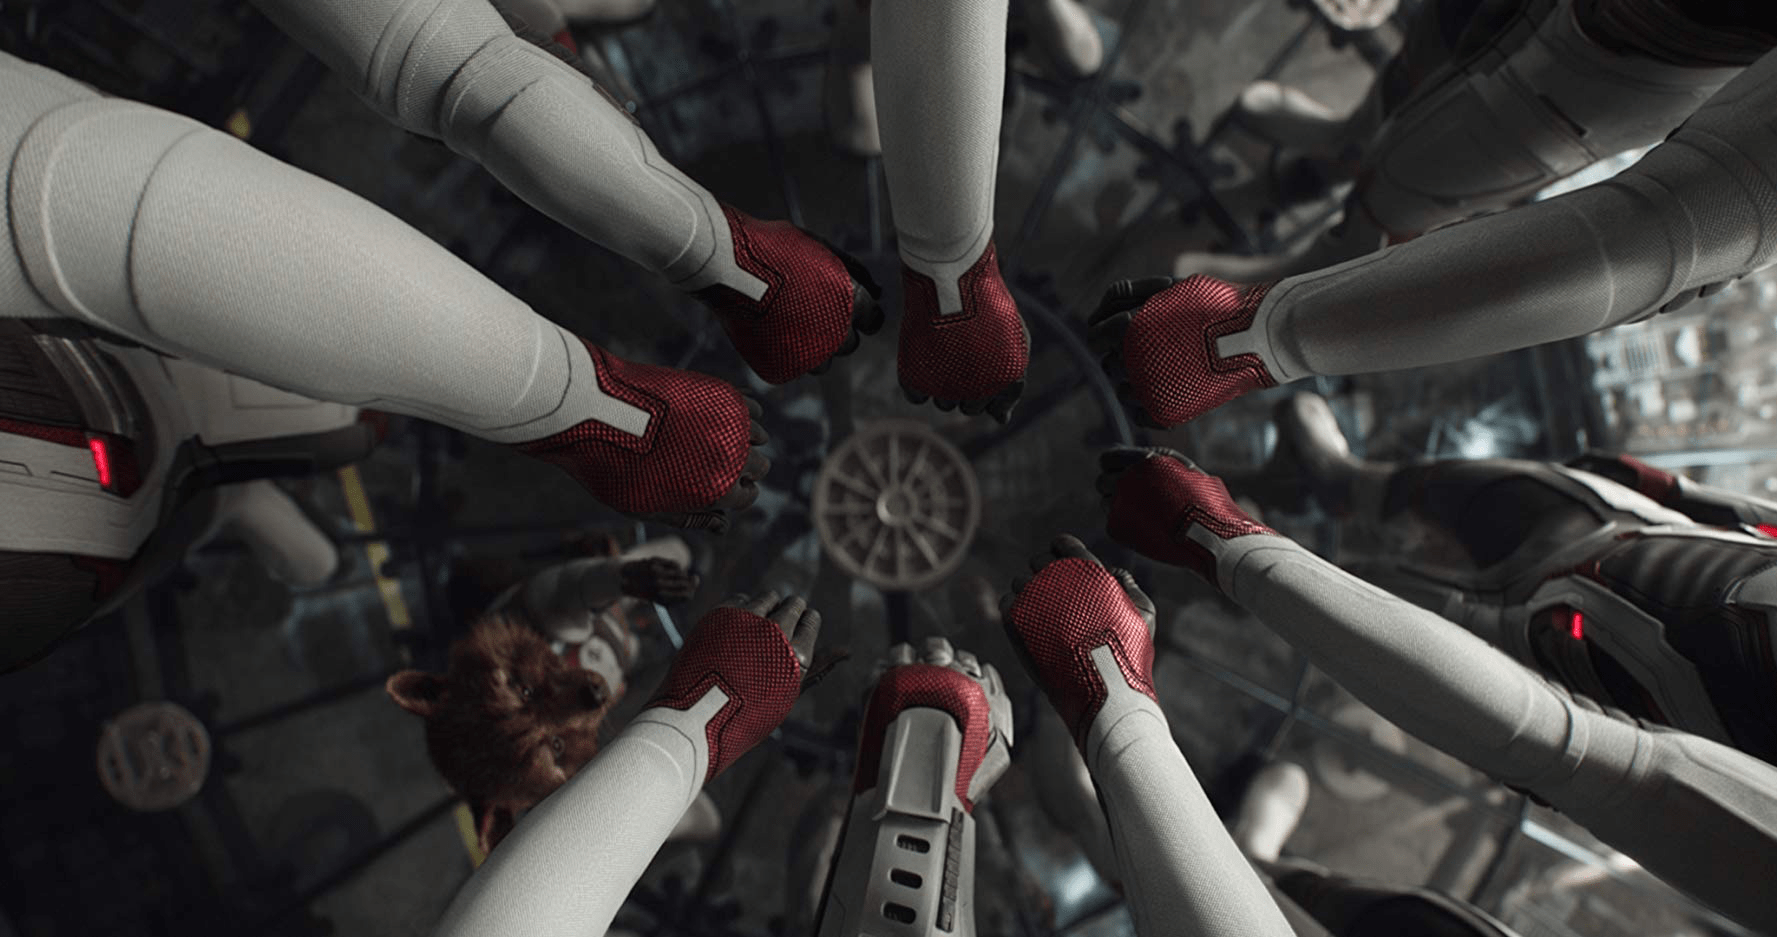 4) The fists of the Avengers are reaching in to a circle like a sports team would do before the start of a game. There arms are in white armor and their hands are in red gloves.